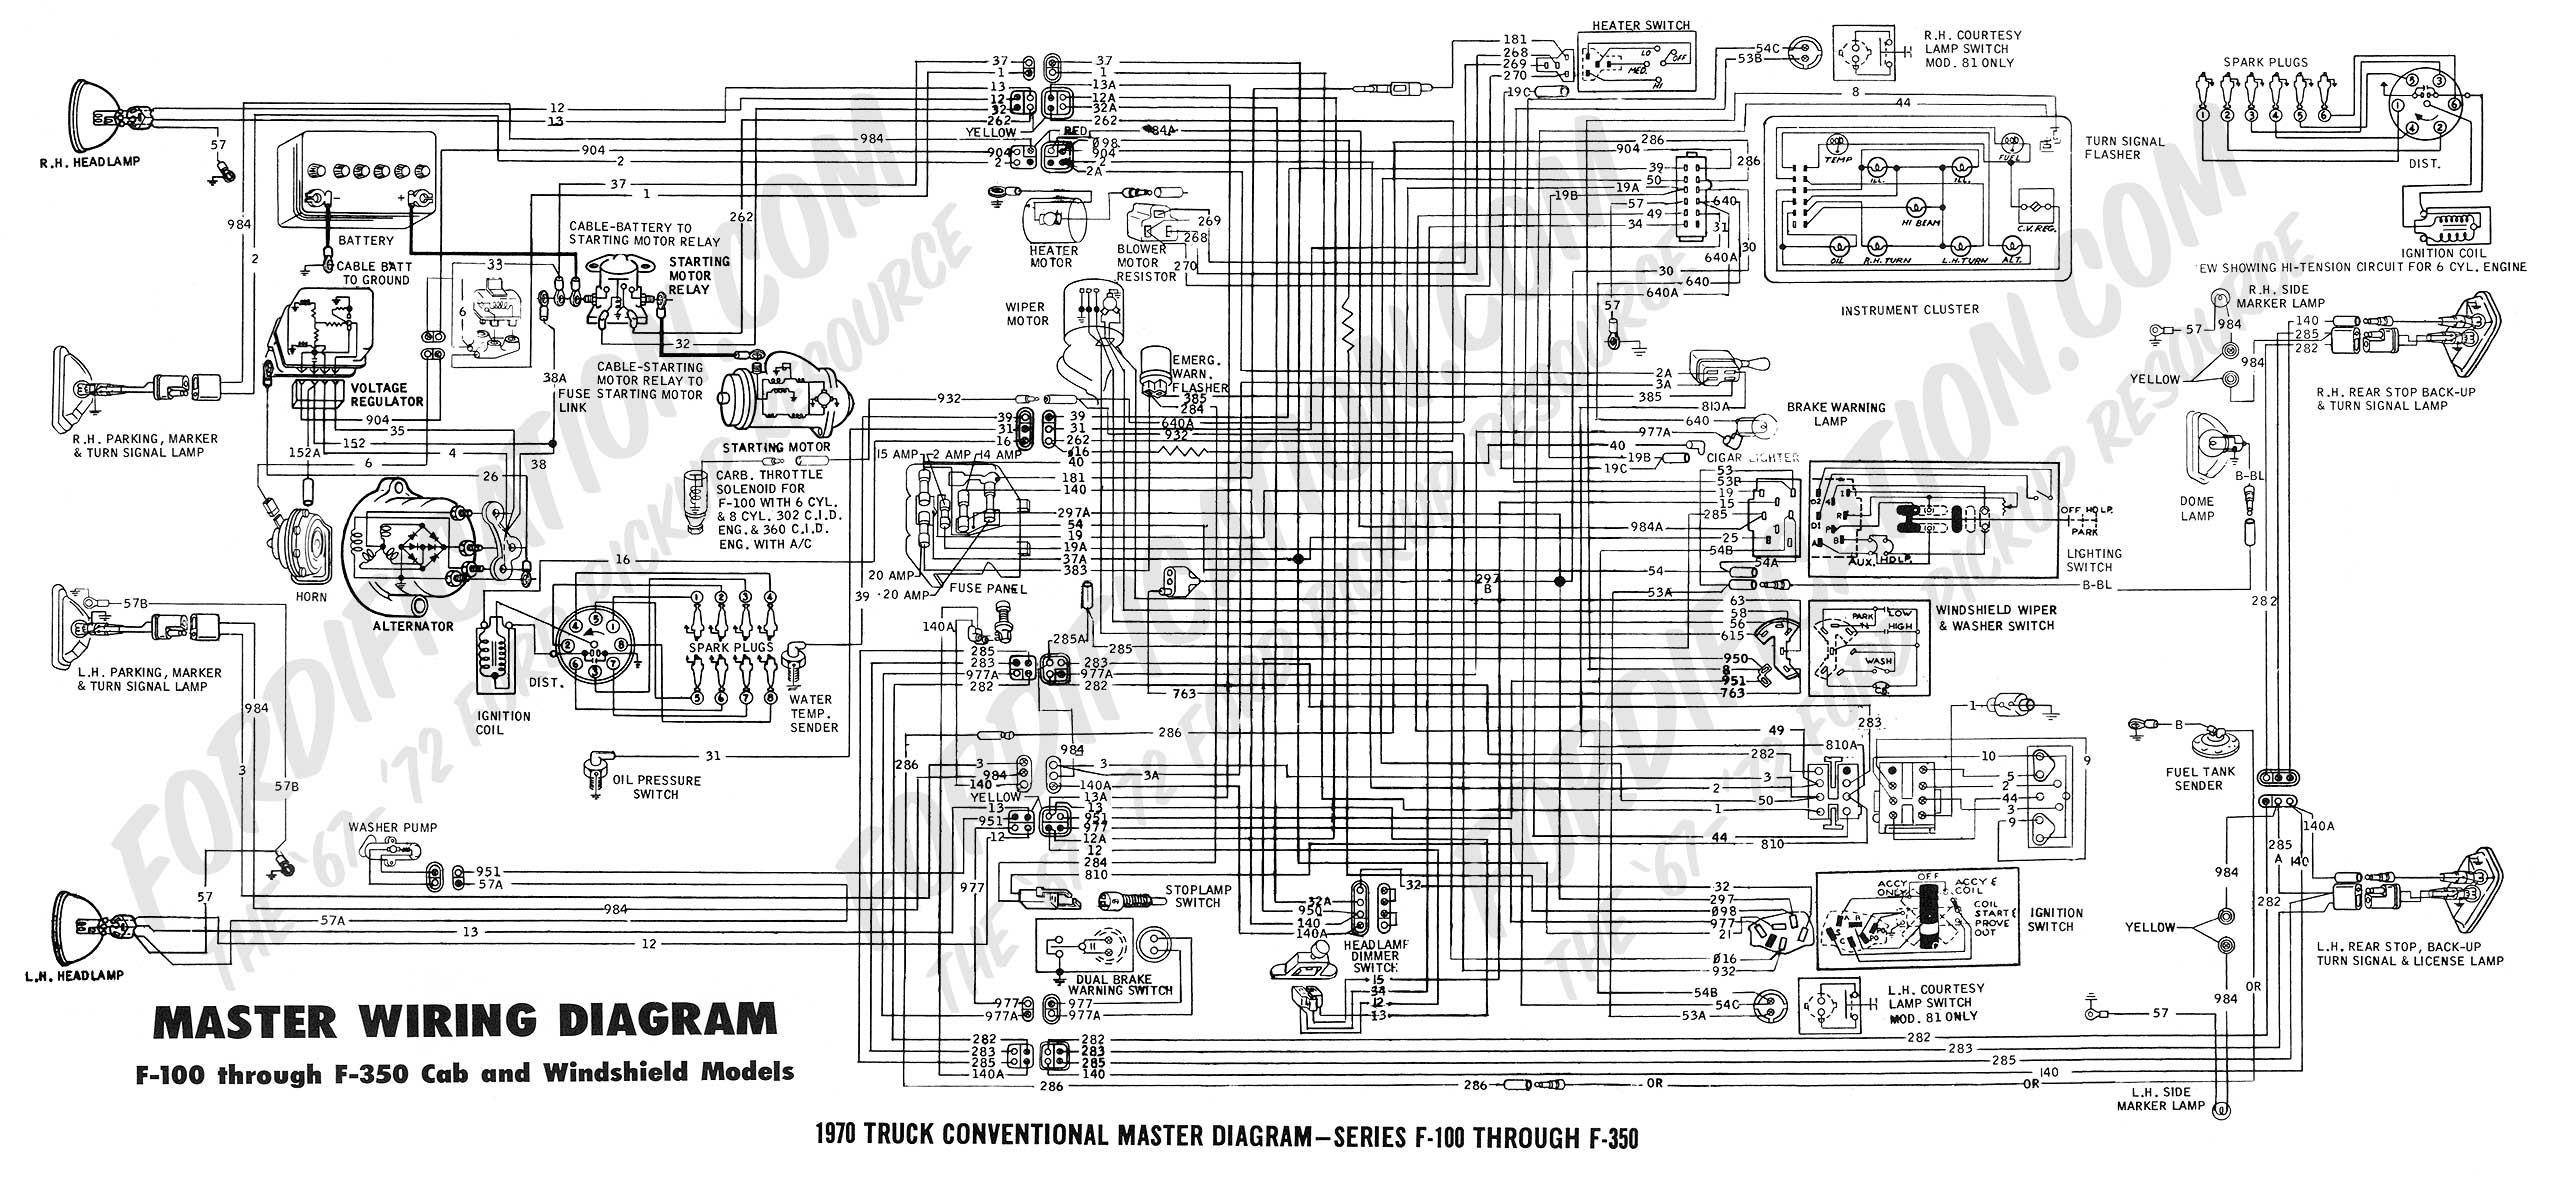 1996 f53 wiring diagram ford van wiring diagram ford wiring diagrams